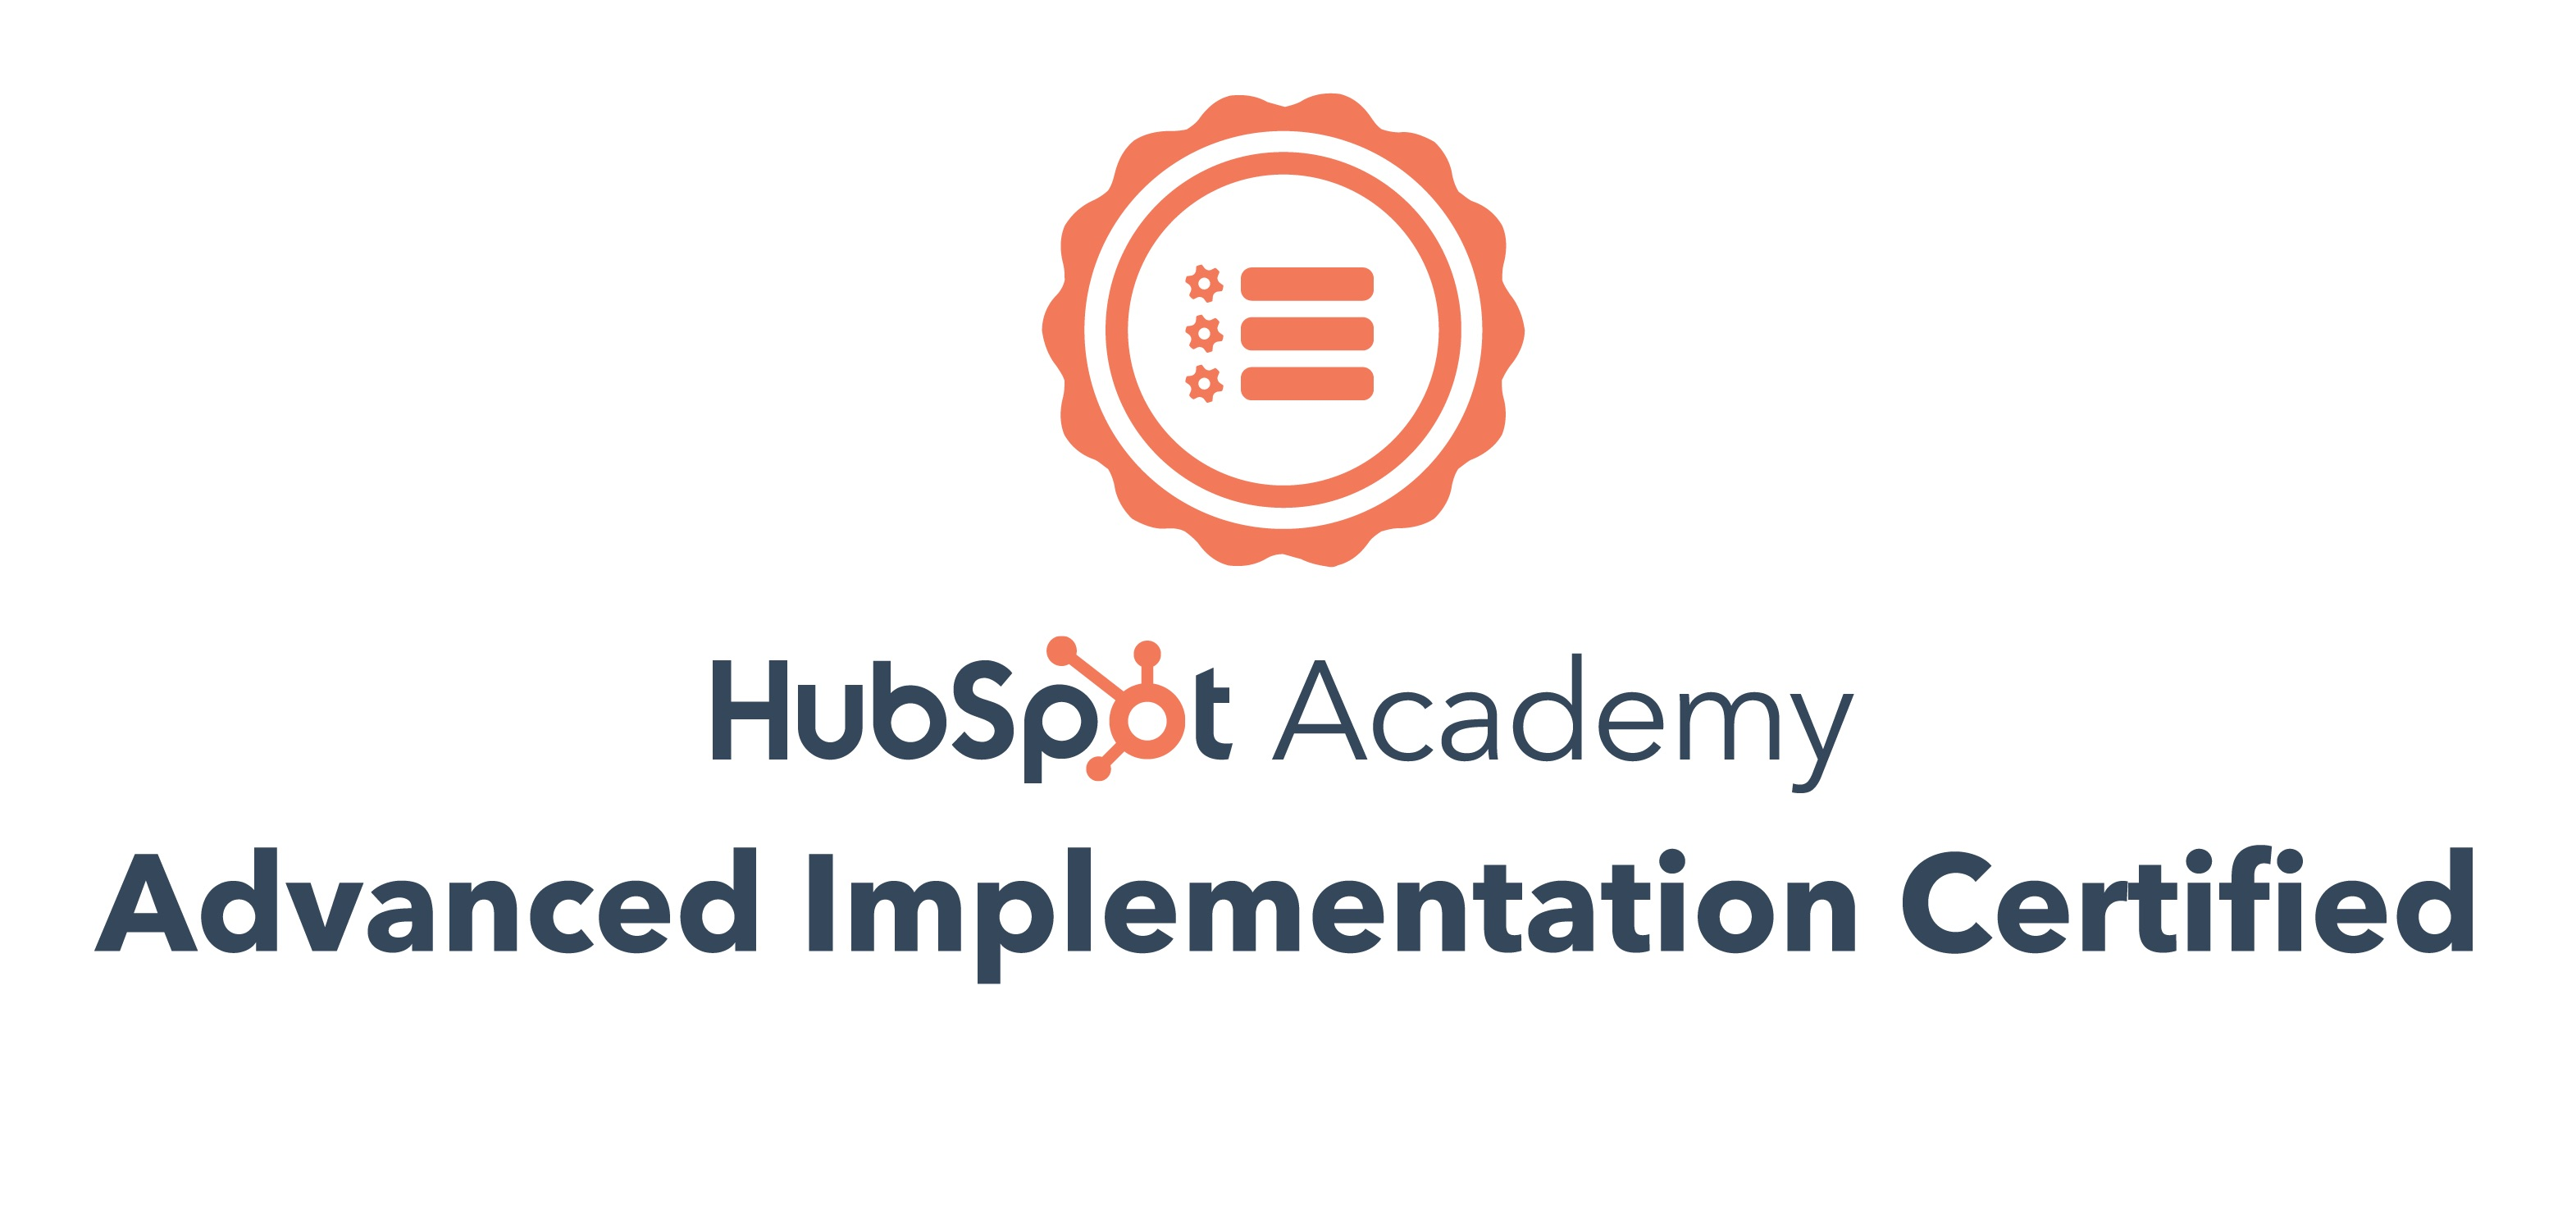 LyntonWeb Awarded Advanced Implementation Certification by HubSpot